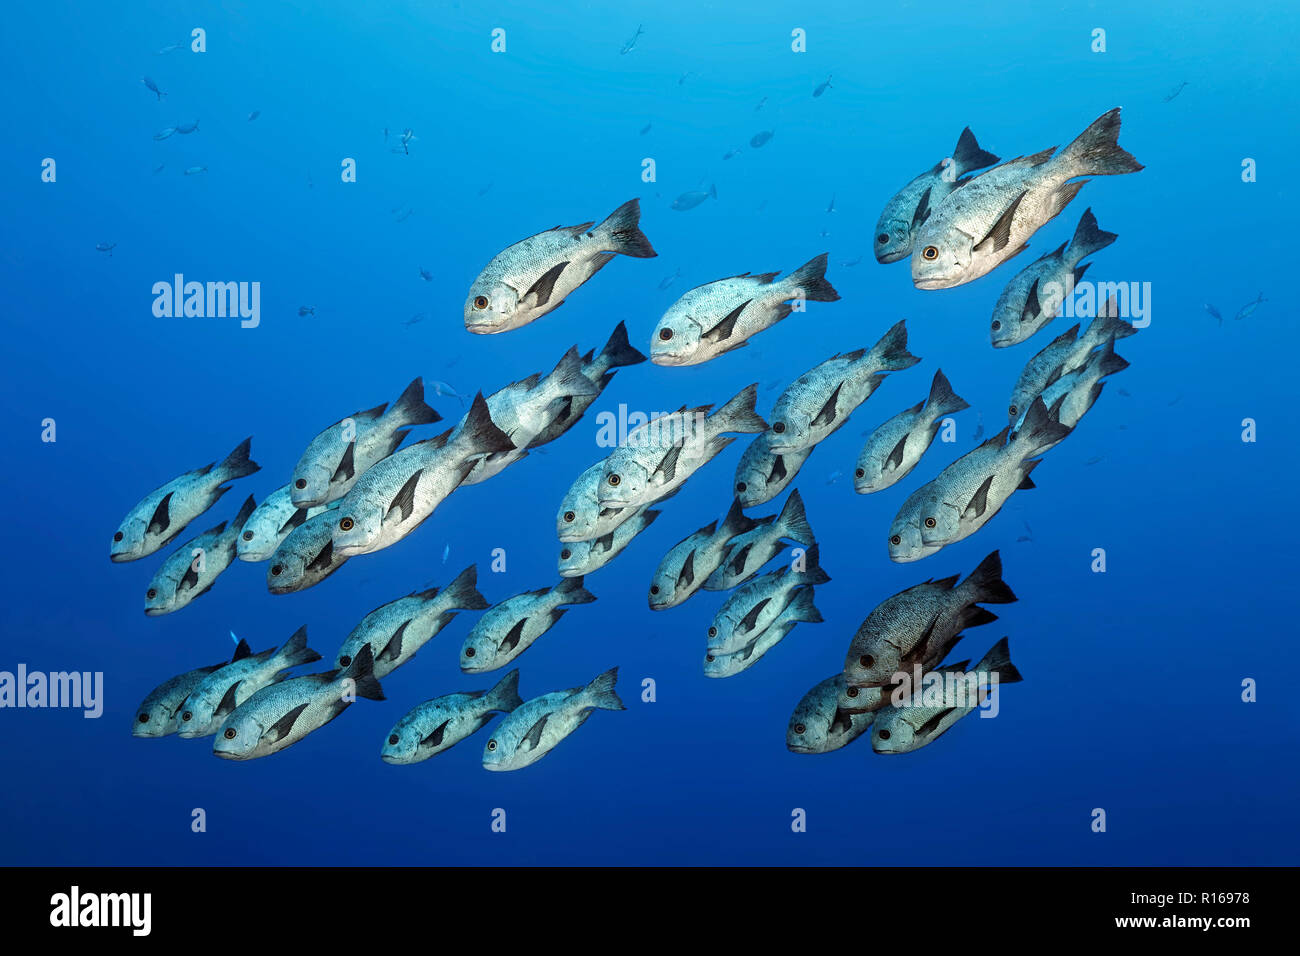 Swarm Black-White Snapper or Black and white snapper (Macolor niger) swimming in the open sea, Great Barrier Reef, Pacific - Stock Image